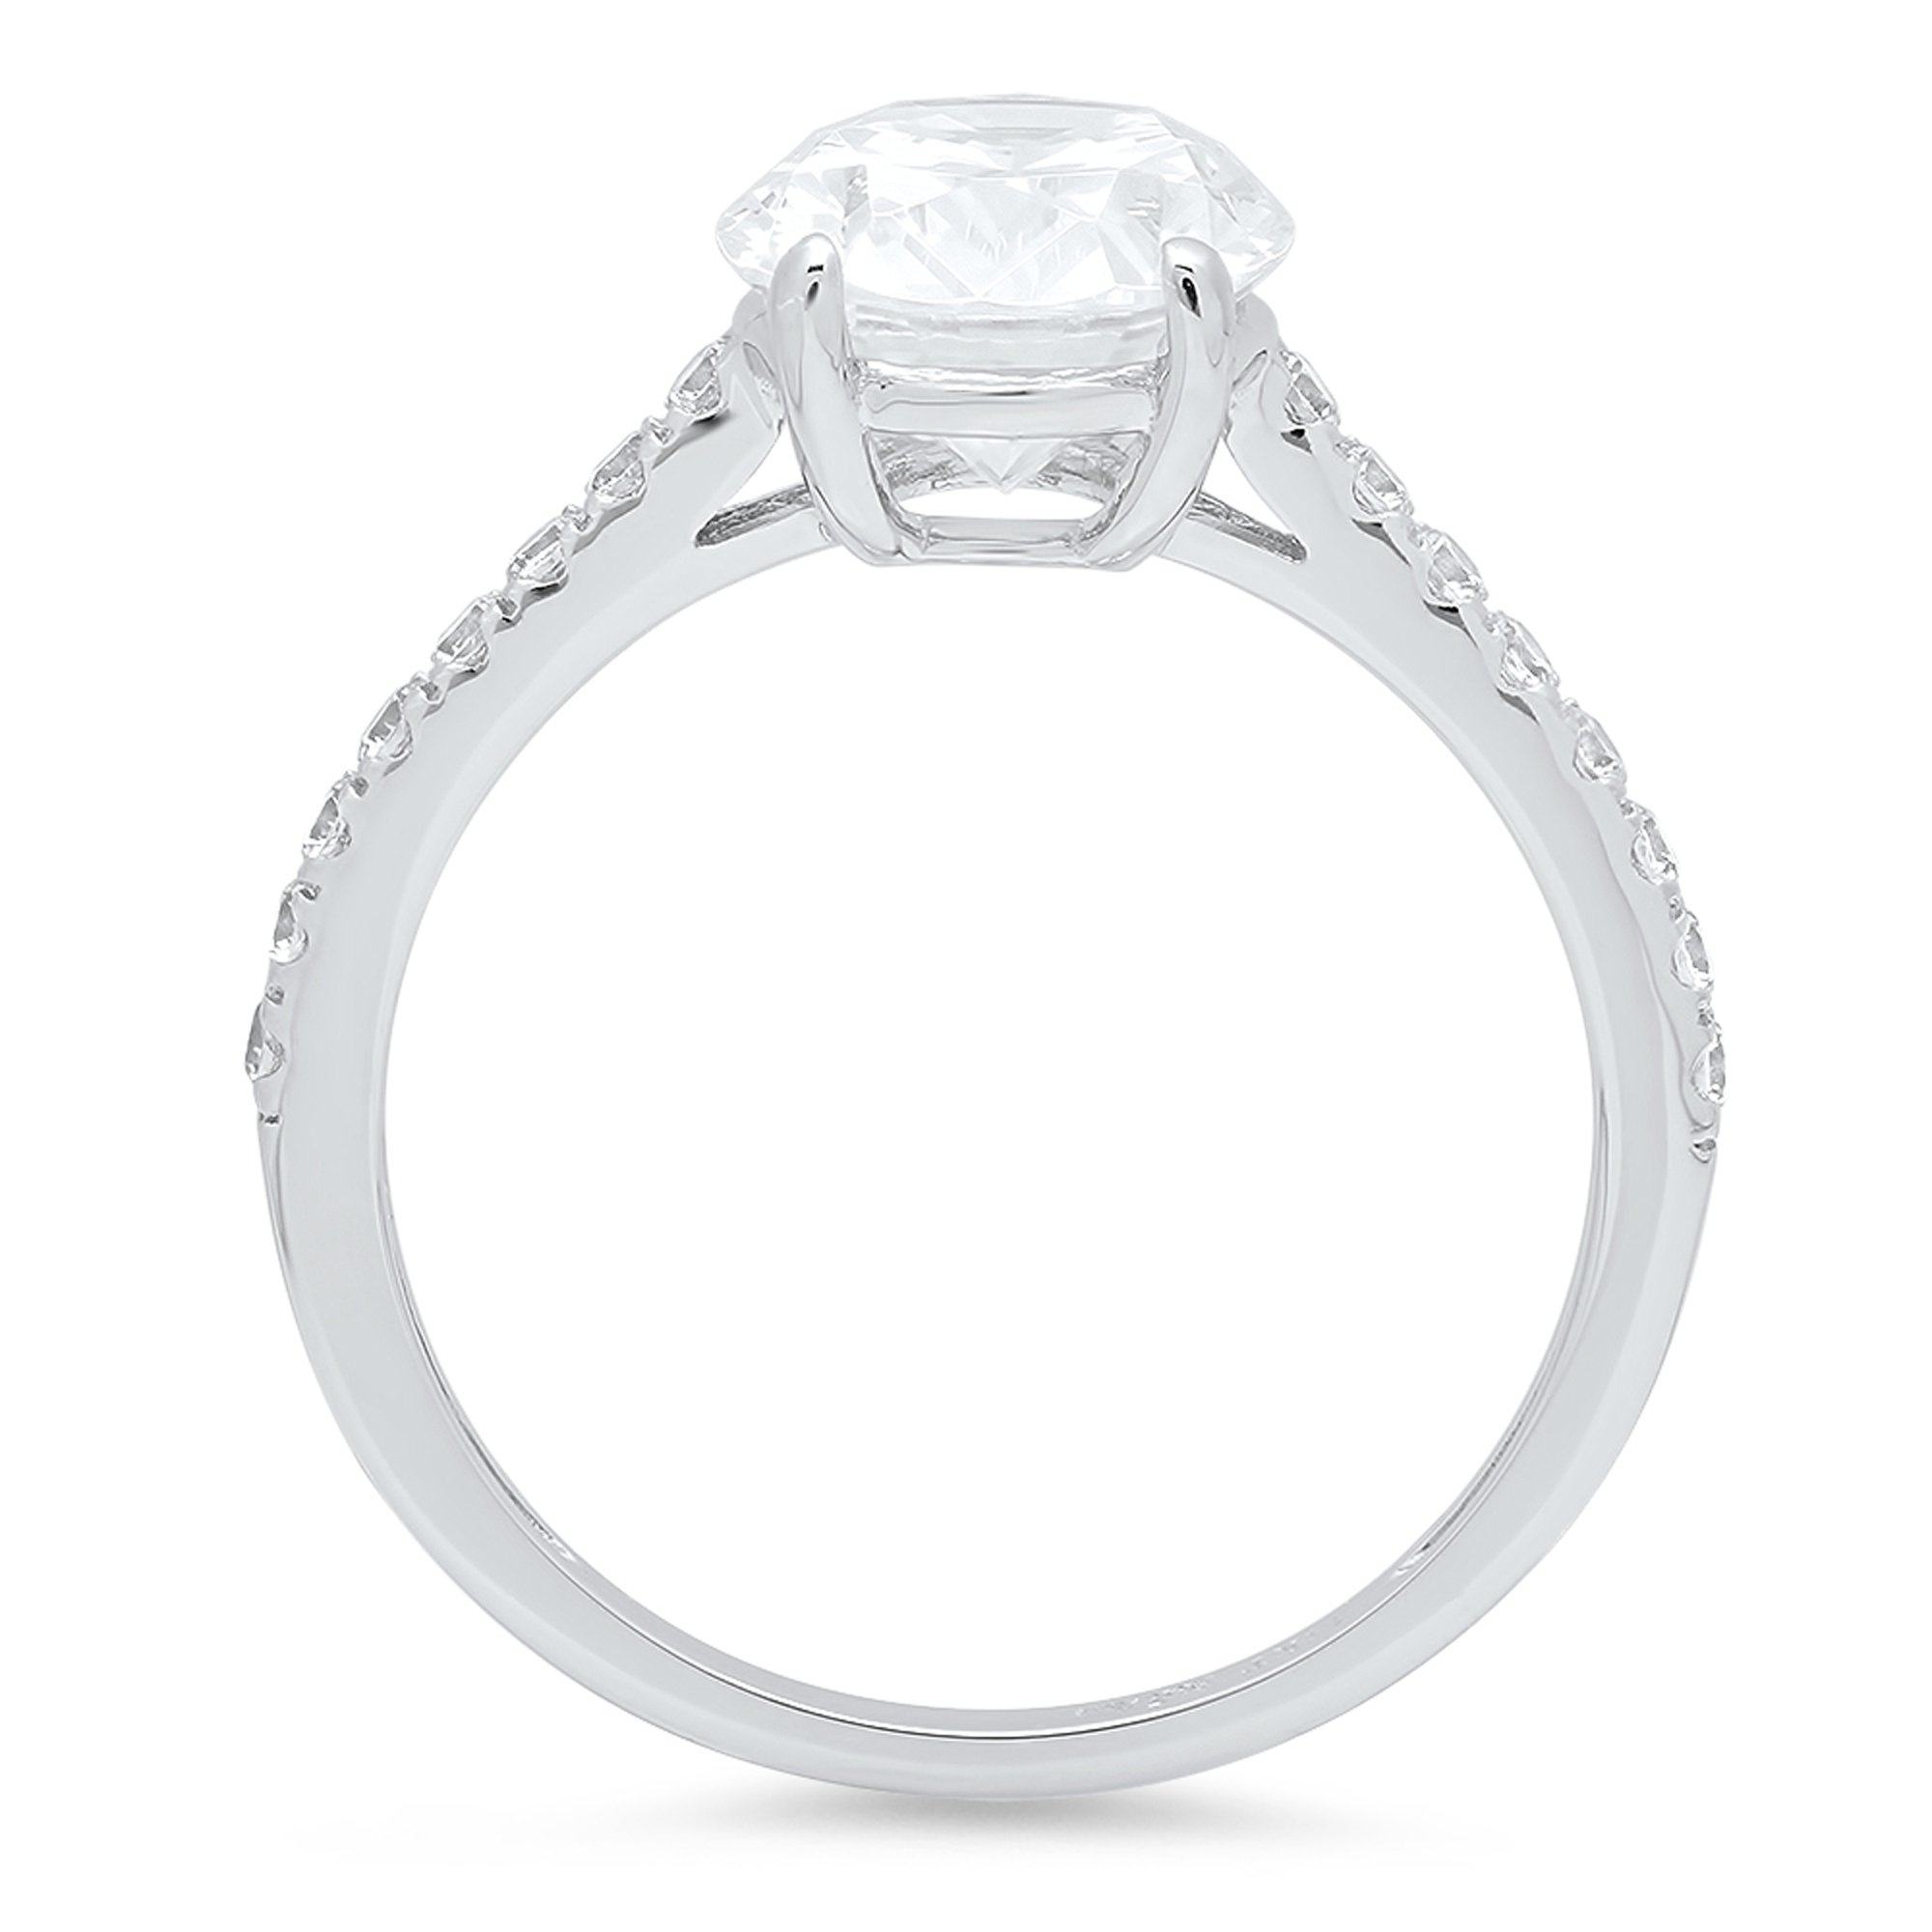 2.09 ct Brilliant Oval Cut Accent Solitaire Engagement Wedding Bridal Promise Ring Solid 14k White Gold, Size 7 Clara Pucci by Clara Pucci (Image #2)